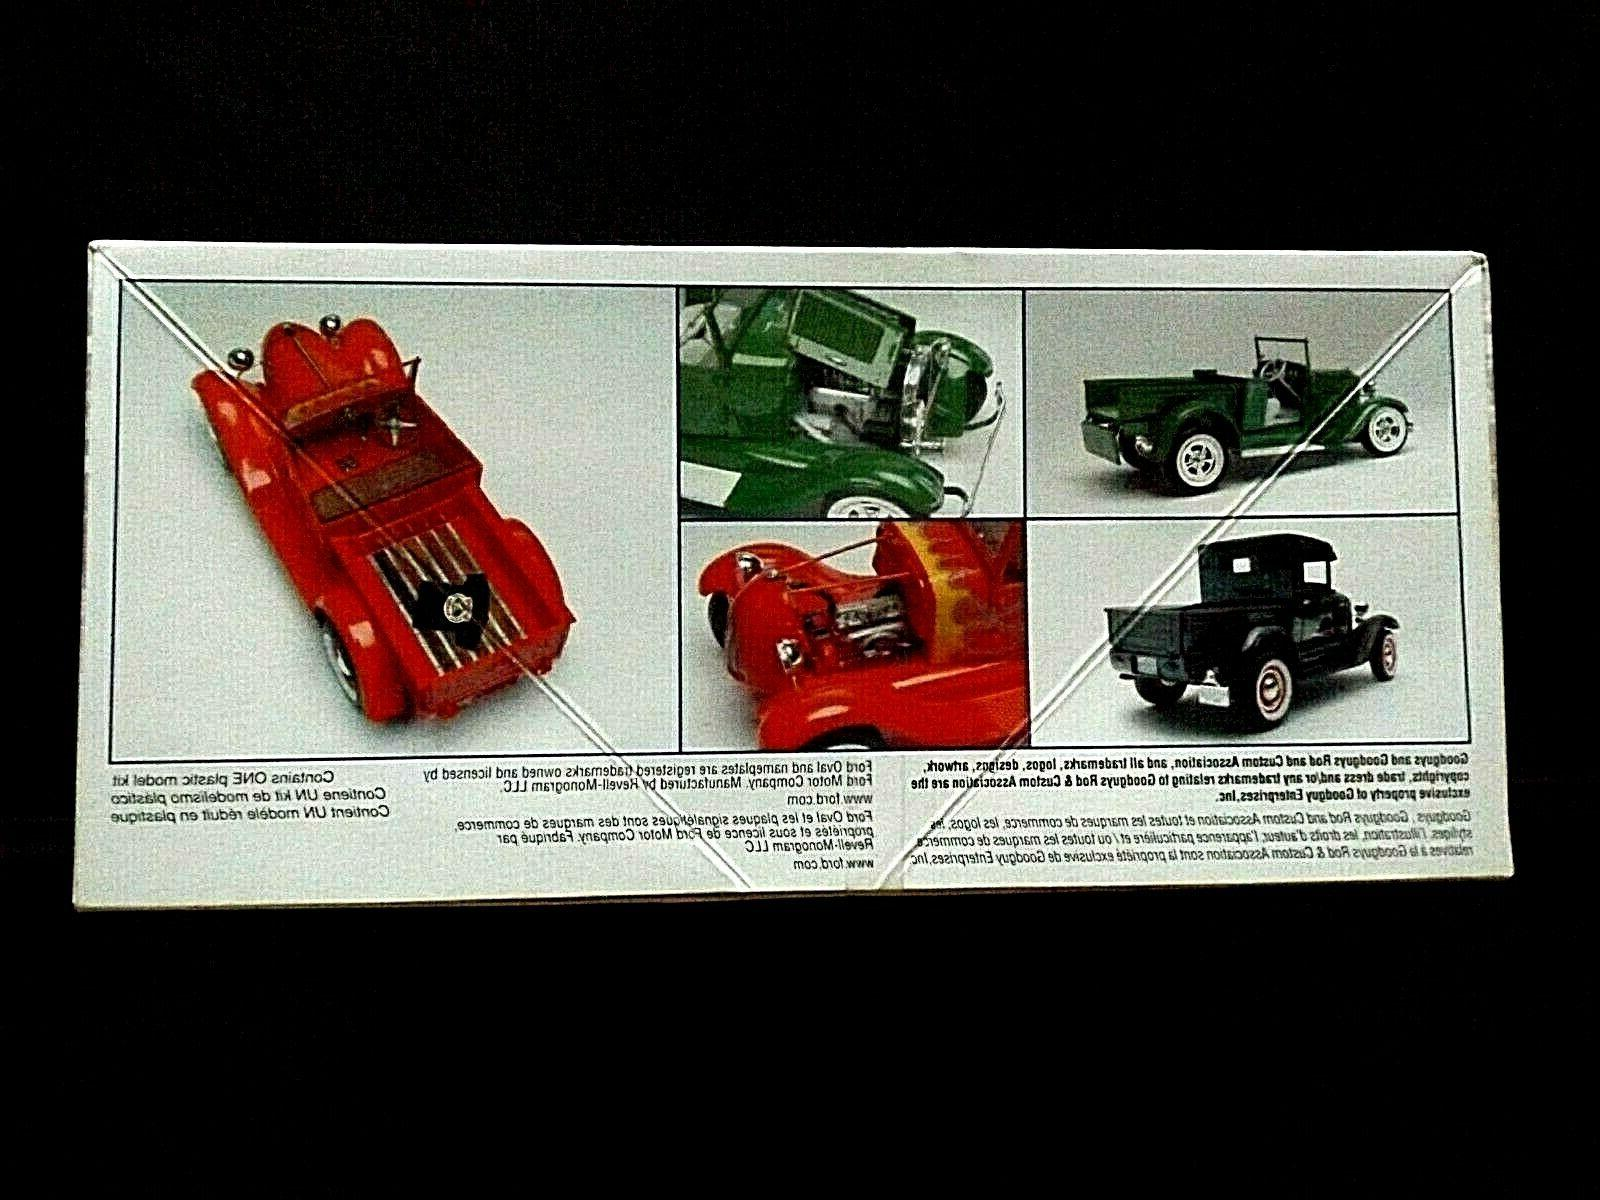 Model Kit 1929 Pickup 3n1 Kit Revell Goodguy's Rod